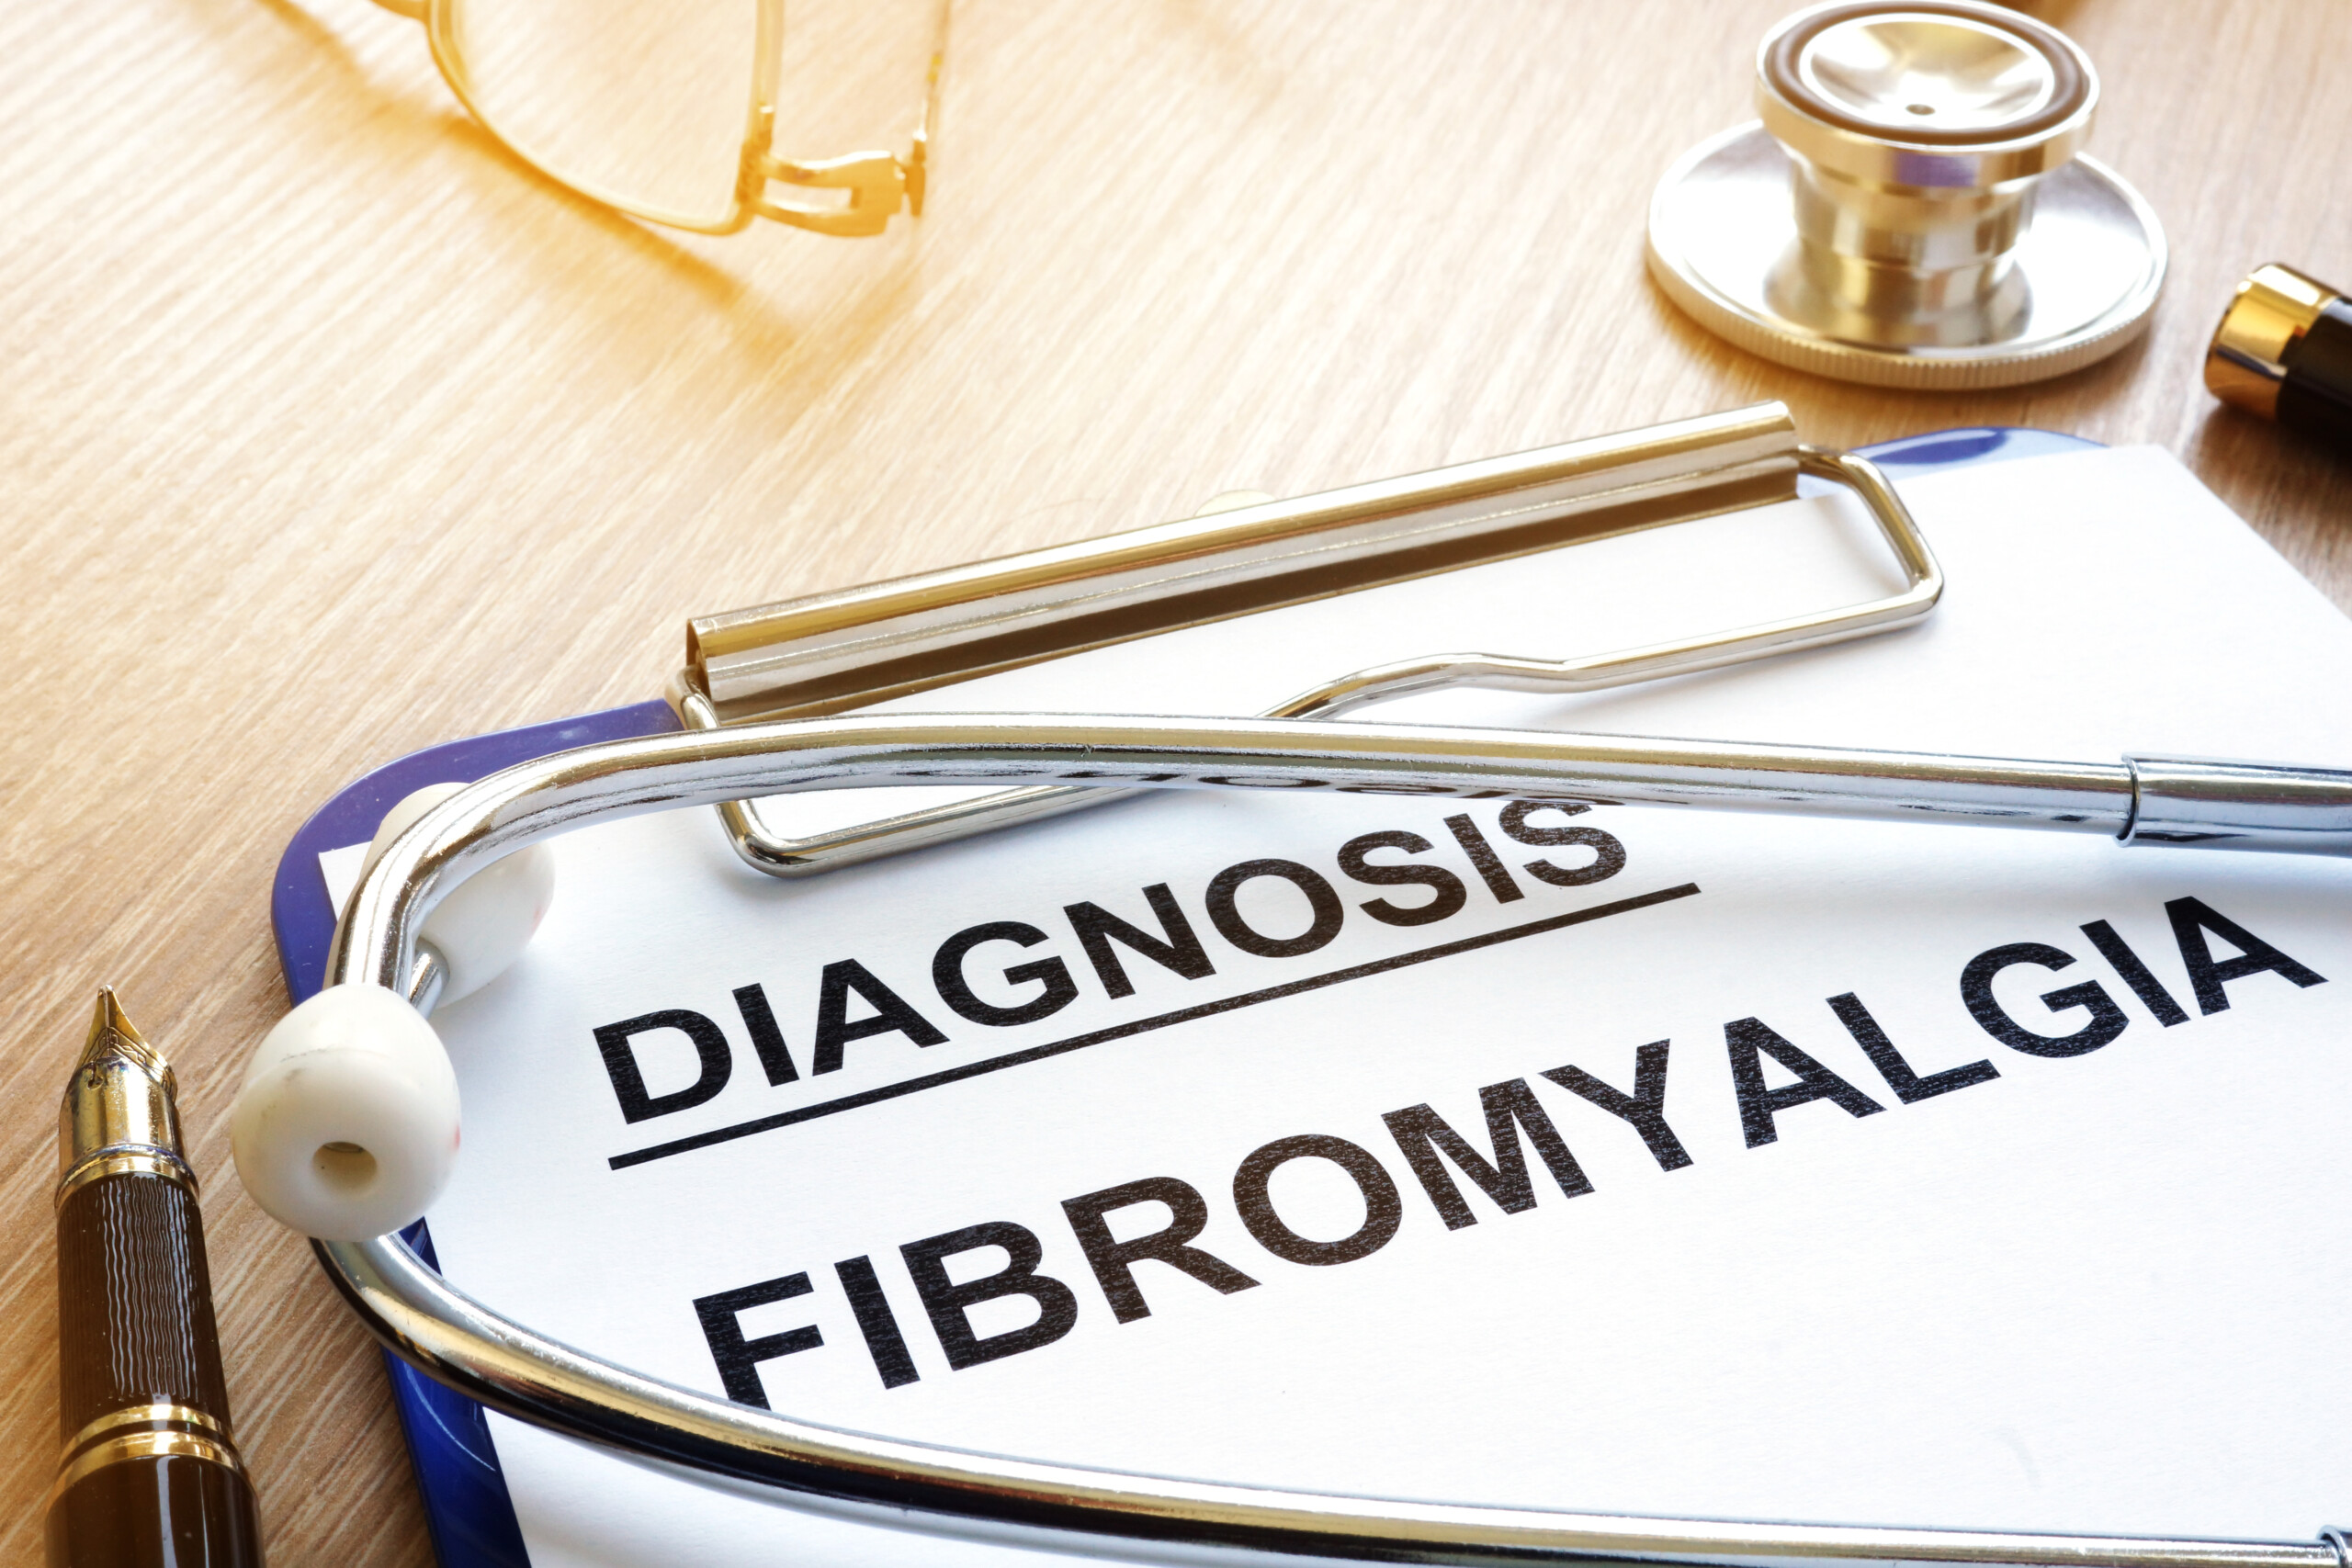 Are Heart Palpitations Normal with Fibromyalgia?